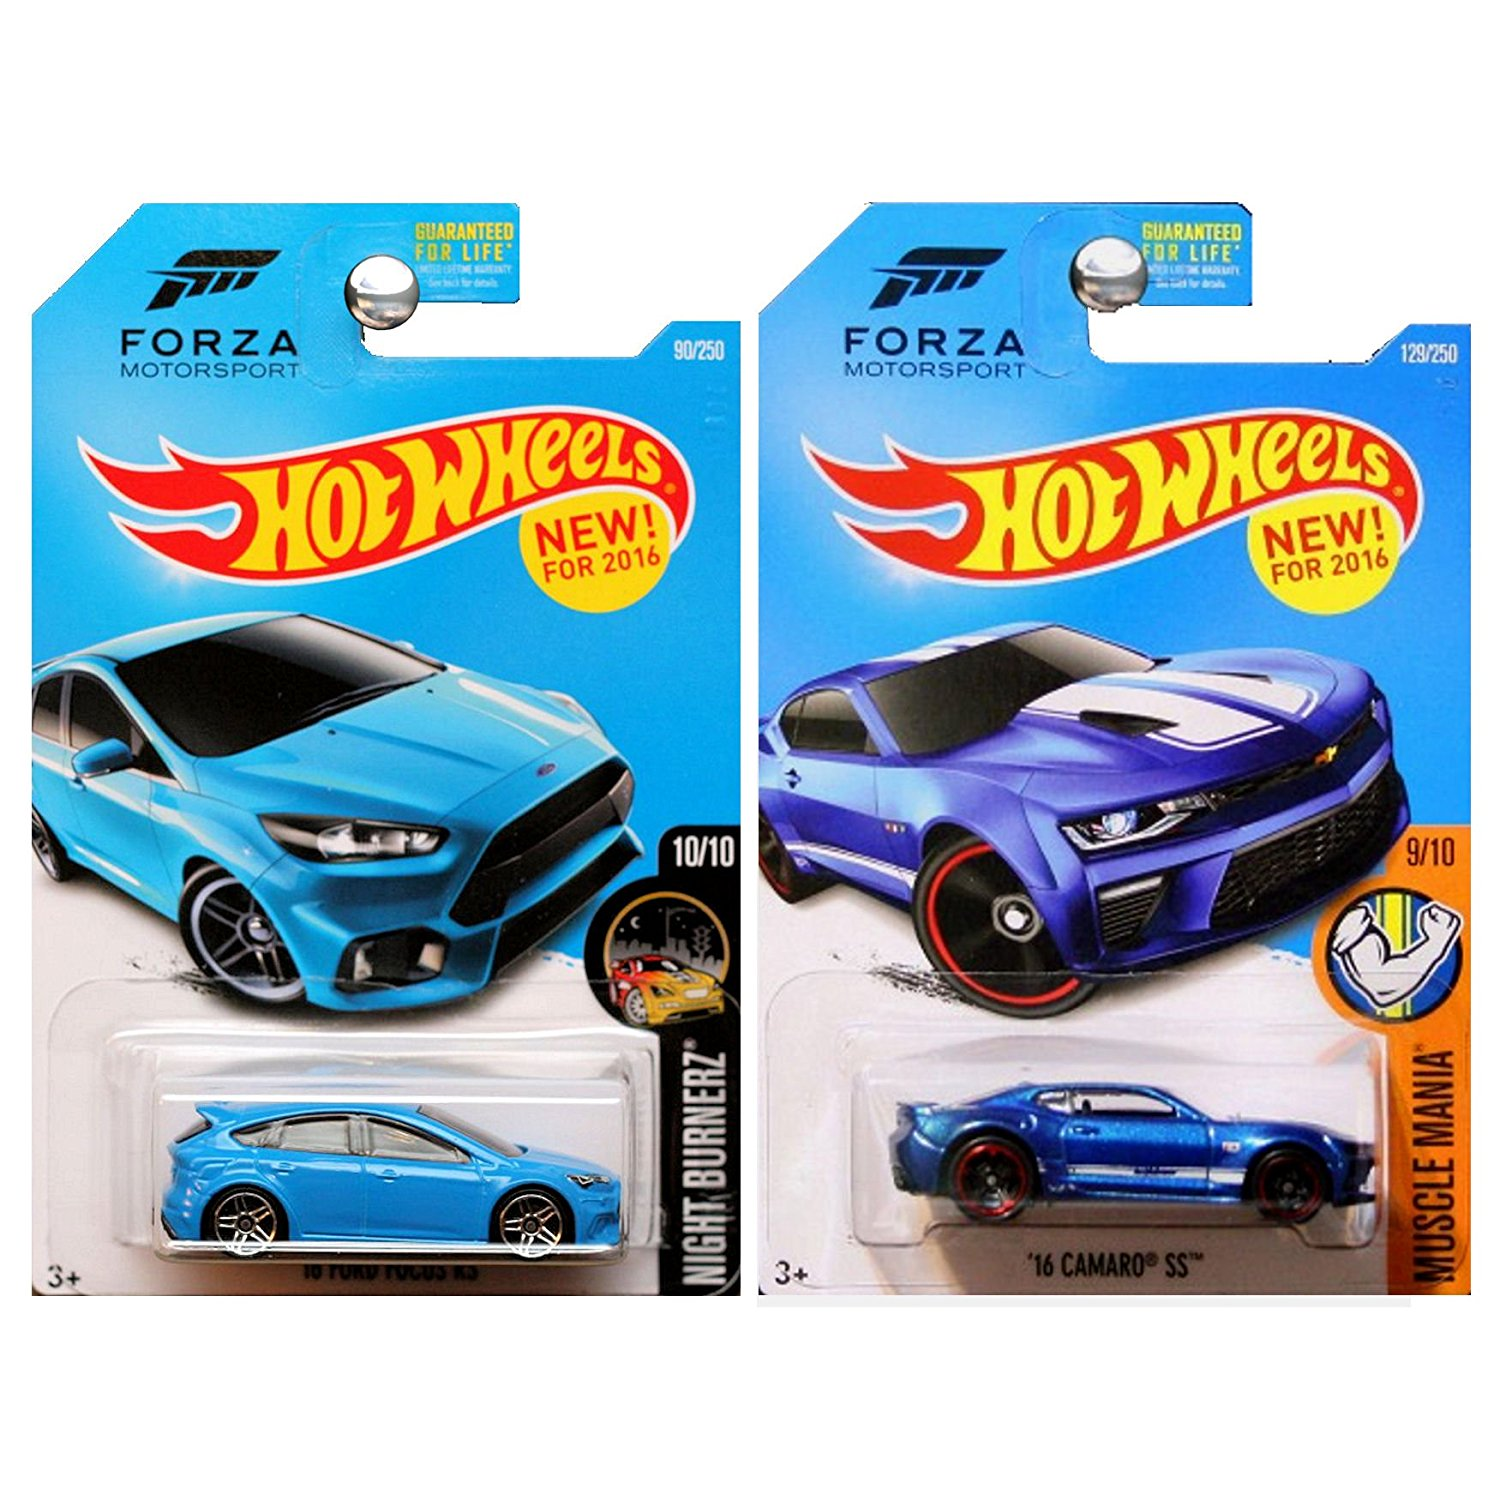 Hot Wheels 2016 Forza Motorsport Set '16 Ford Focus RS and '16 Chevy Chevrolet Camaro SS in Blue SET OF 2